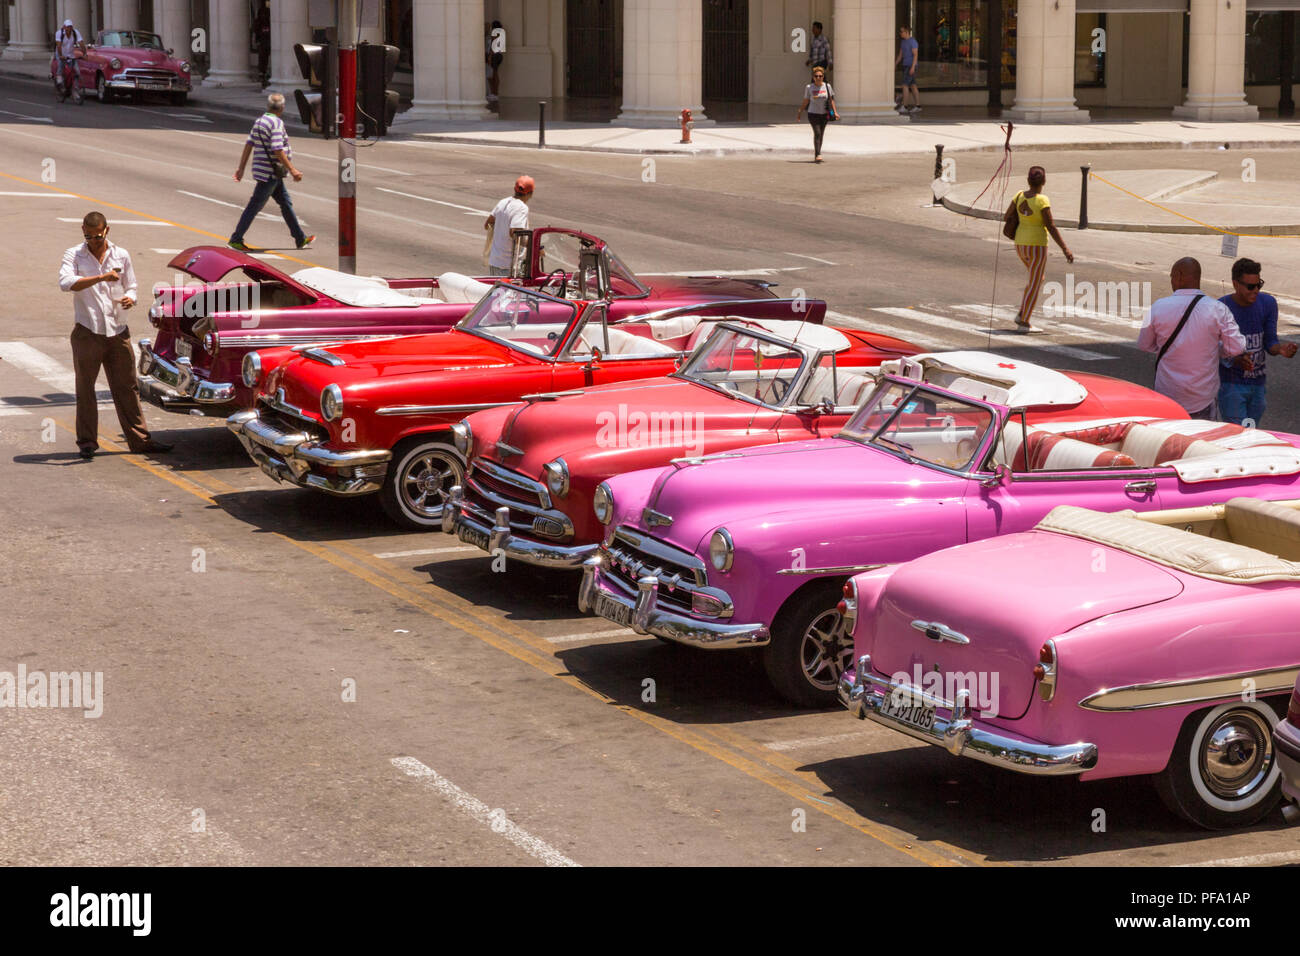 American classic cars and vintage oldtimers in pink, red and purple, lined up in Havana, Cuba - Stock Image